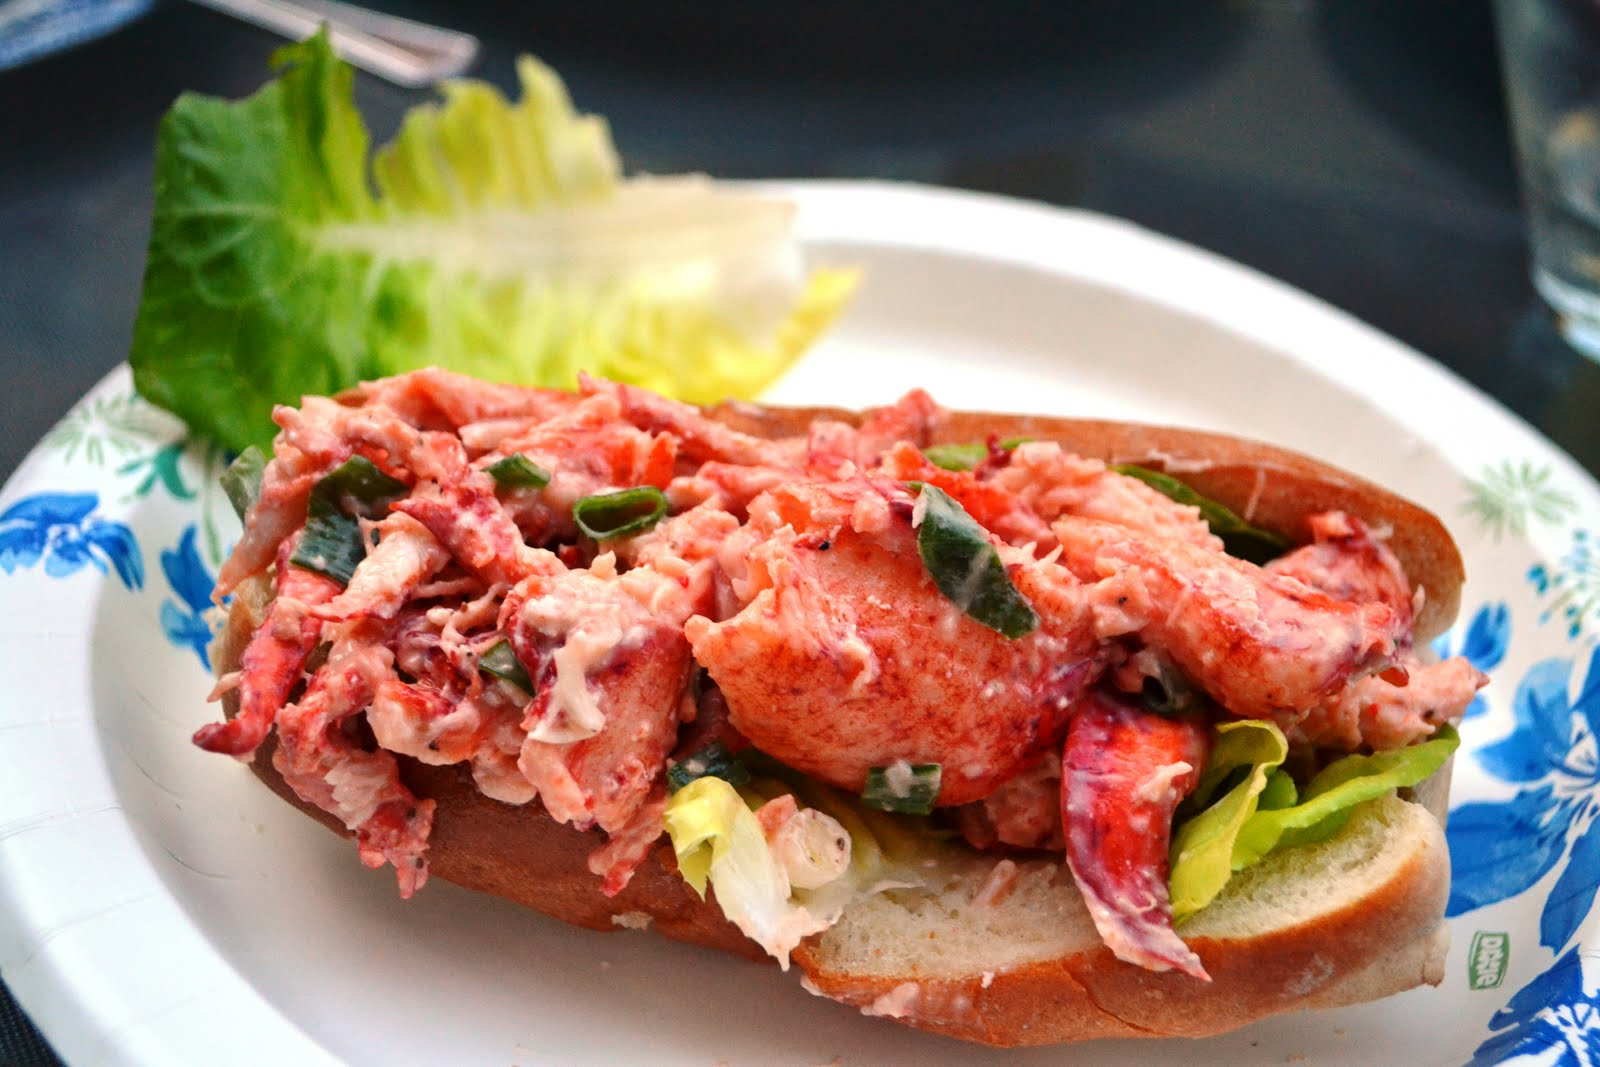 the lobster considered then eaten ham sandwich indicted we buttered the buns and toasted them on a grill lined them some bibb lettuce and stuffed them the lobster and voila we re were transported to